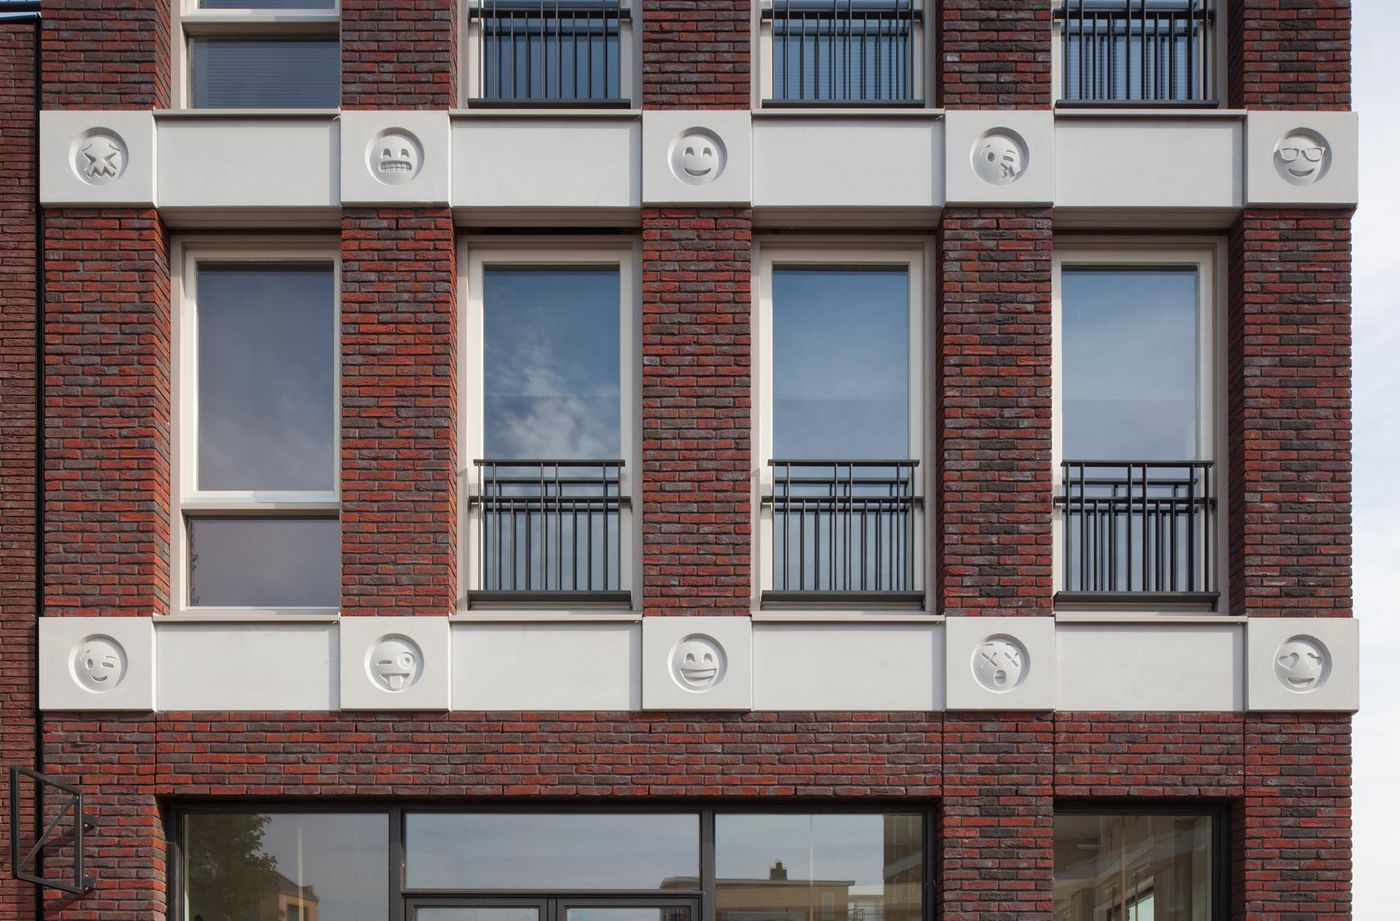 Close up of facade of brick building with face emojis cast in white concrete that run horizontally at the top of each story.